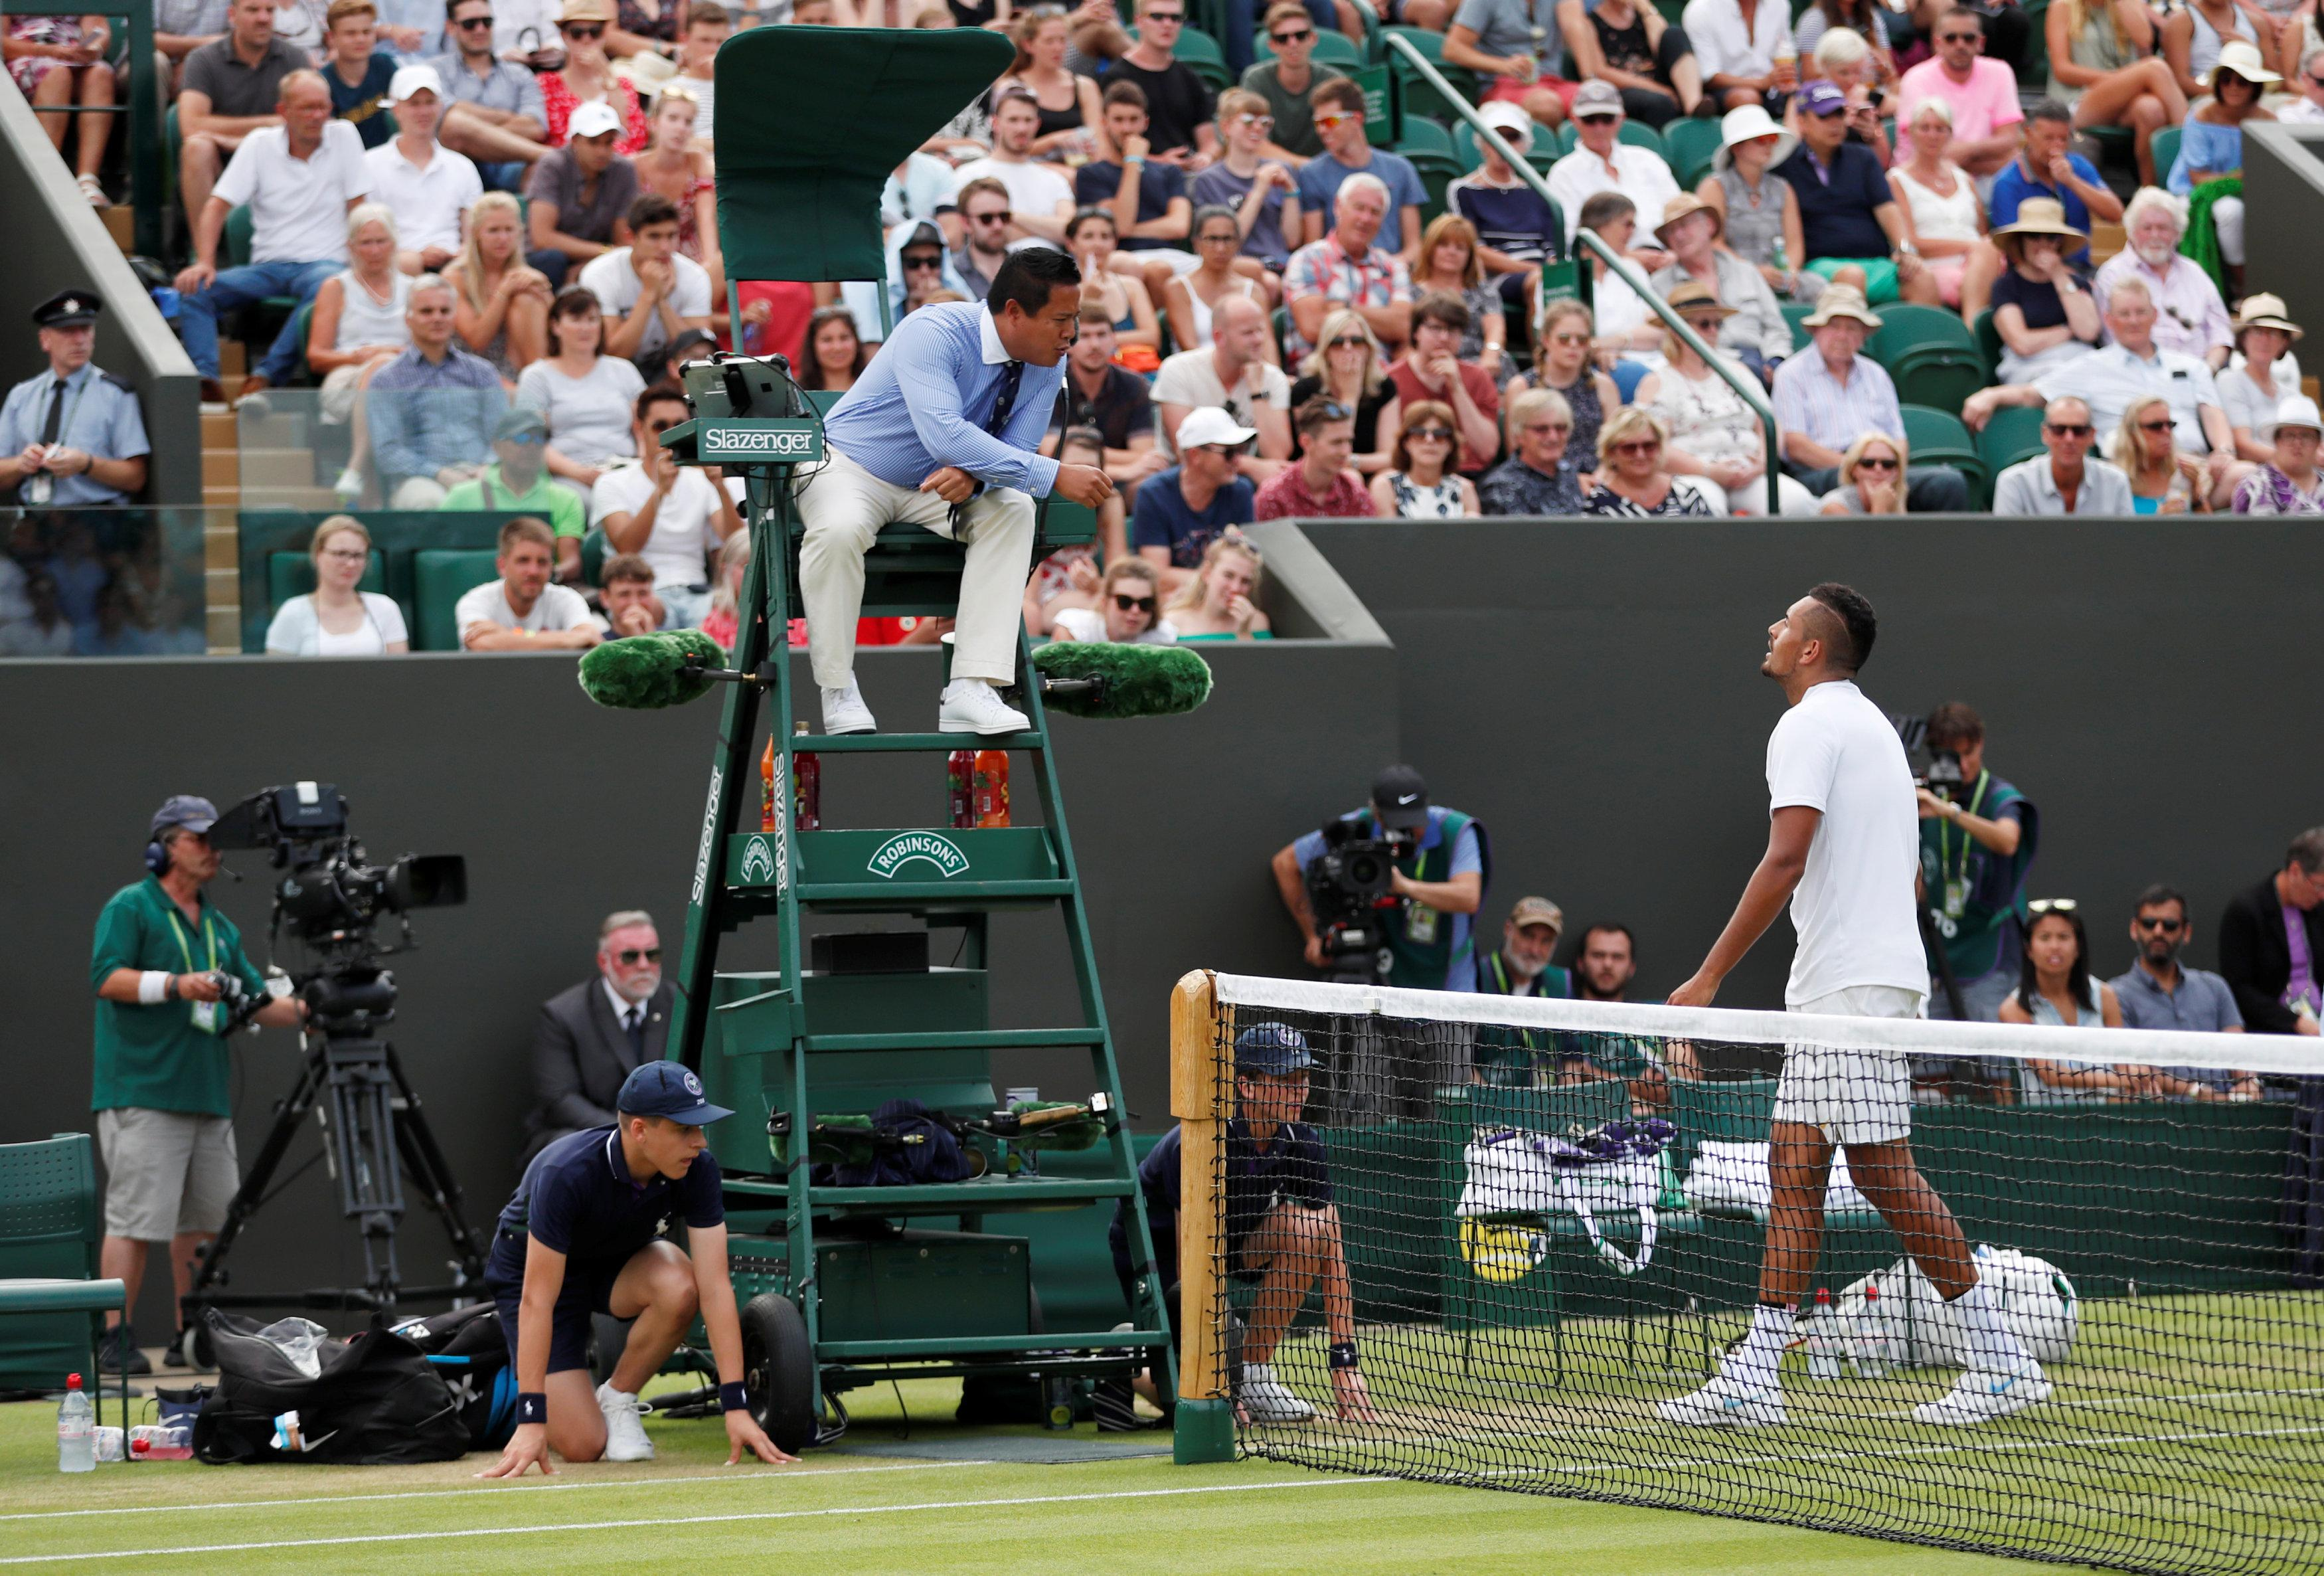 Kyrgios, 23, has often been described as the bad boy of tennis following a number of controversial incidents and run-ins with umpires